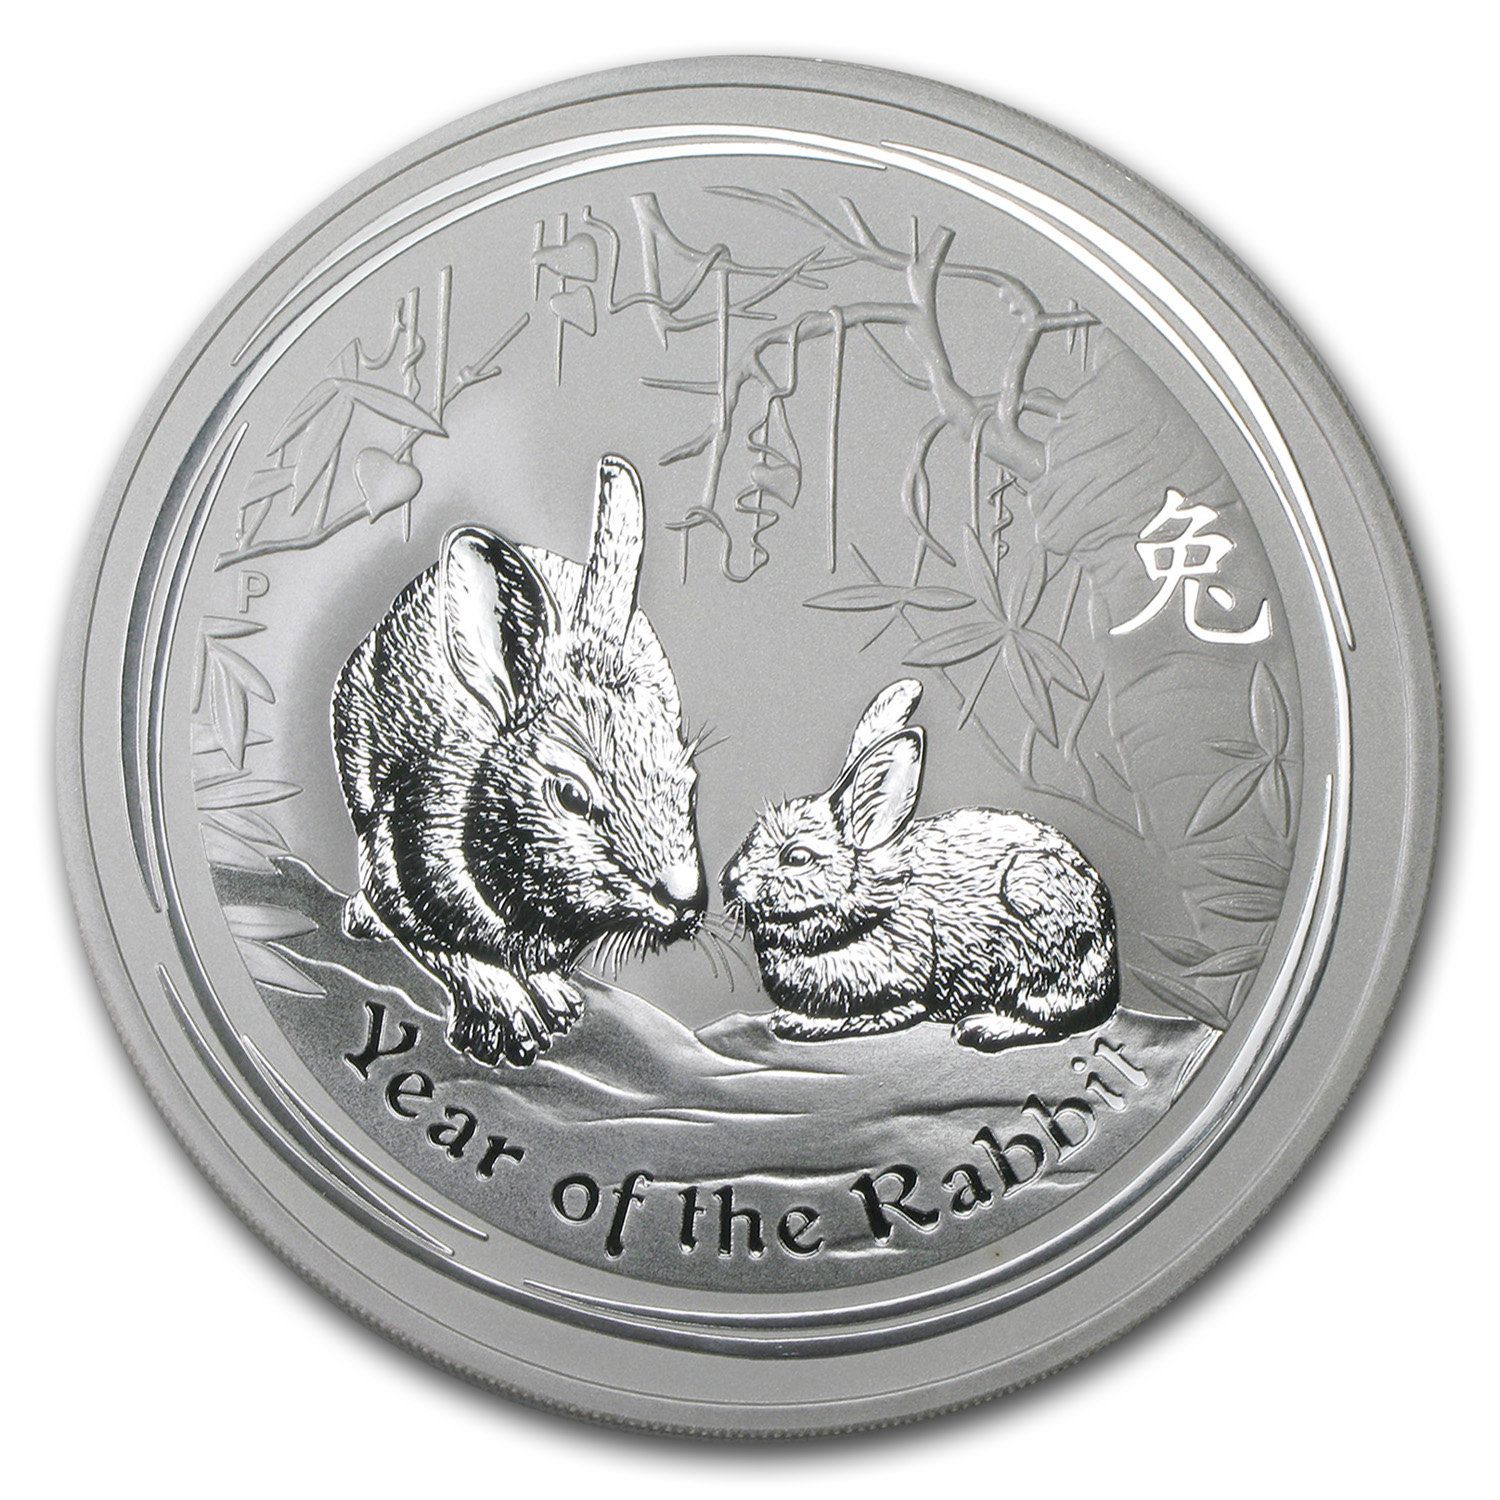 2011 Australia 10 oz Silver Year of the Rabbit BU